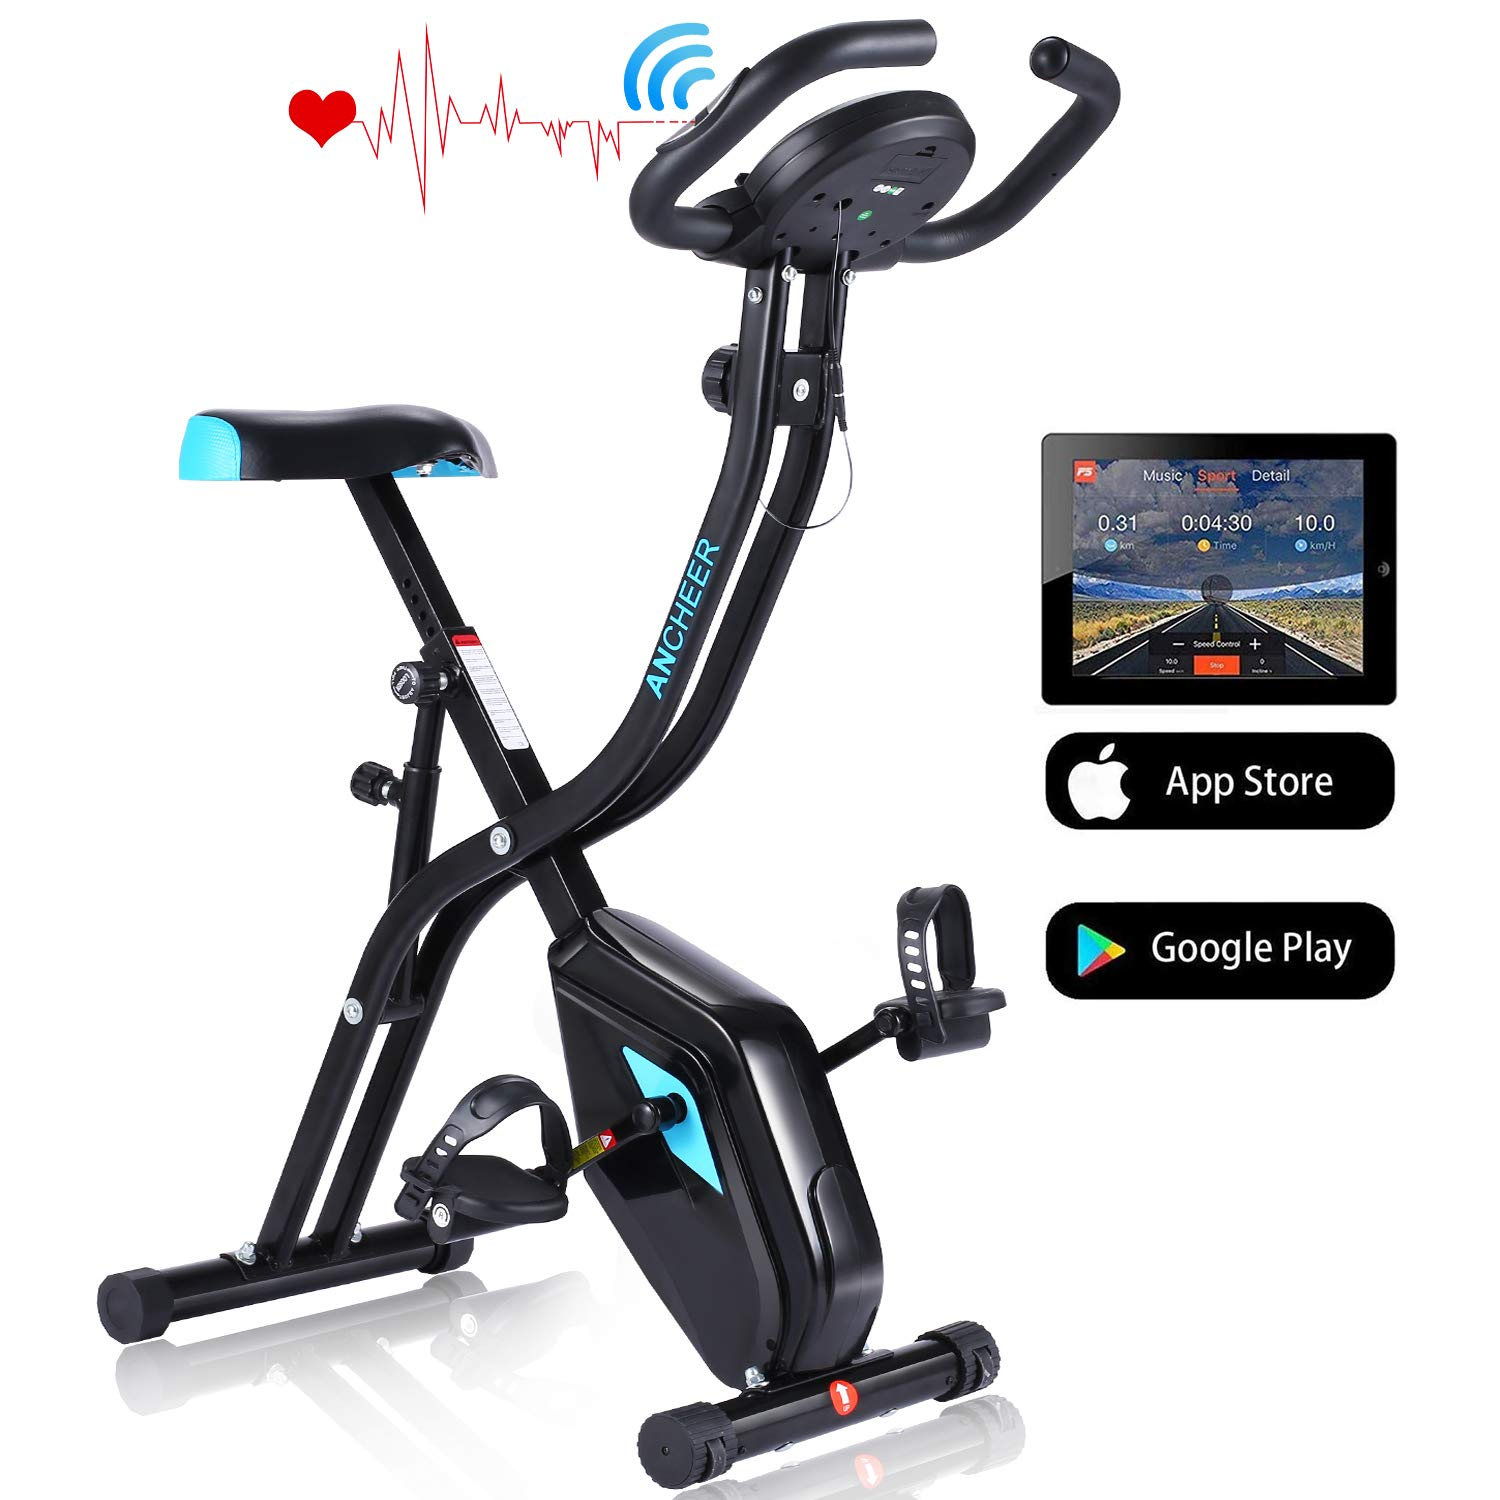 ANCHEER APP Control Folding Exercise Bike, Indoor Stationary Bike with 10-Level Adjustable Magnetic Resistance Comfortable Seat for Home Gym Cardio Fitness